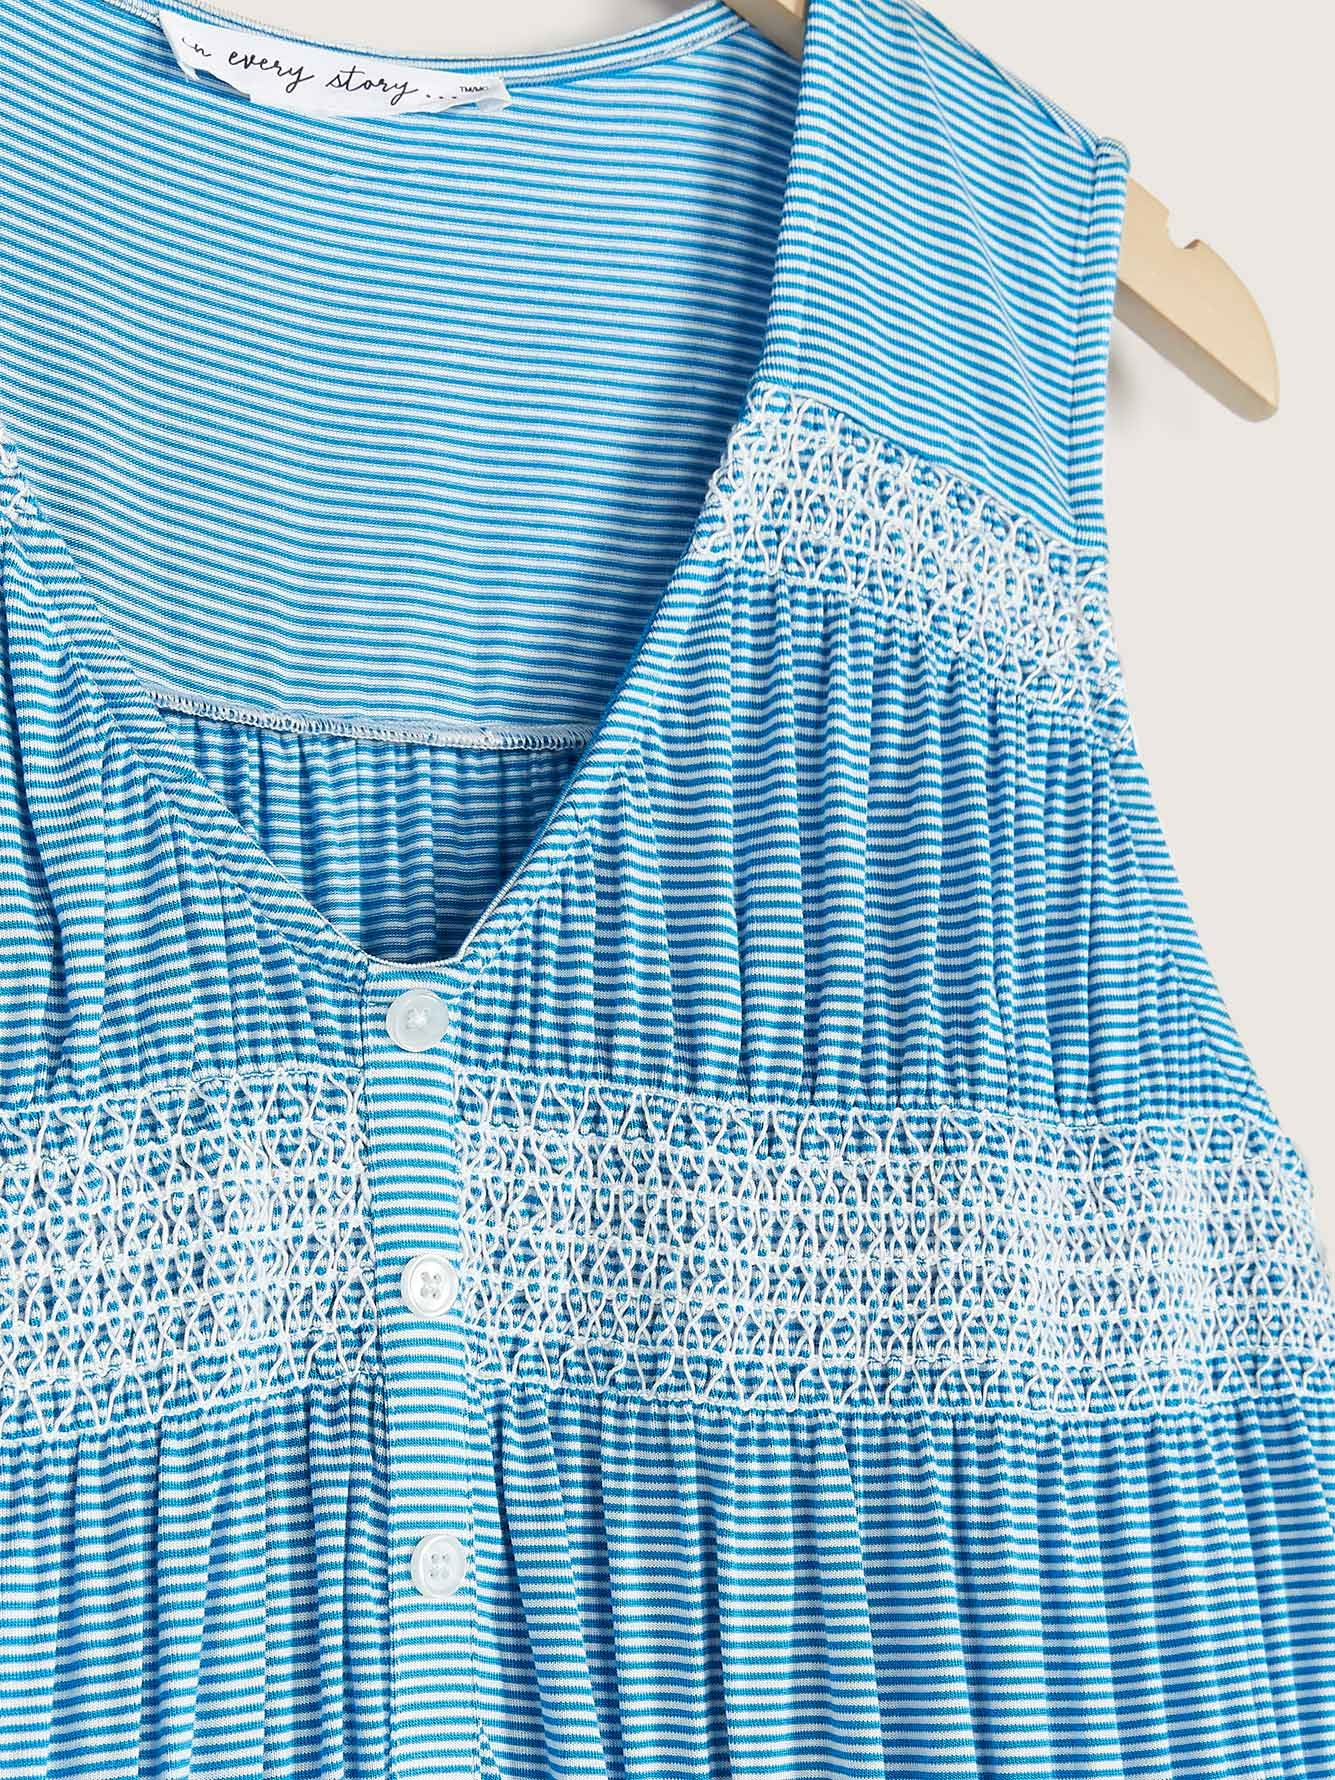 Smocked Sleeveless Top - In Every Story